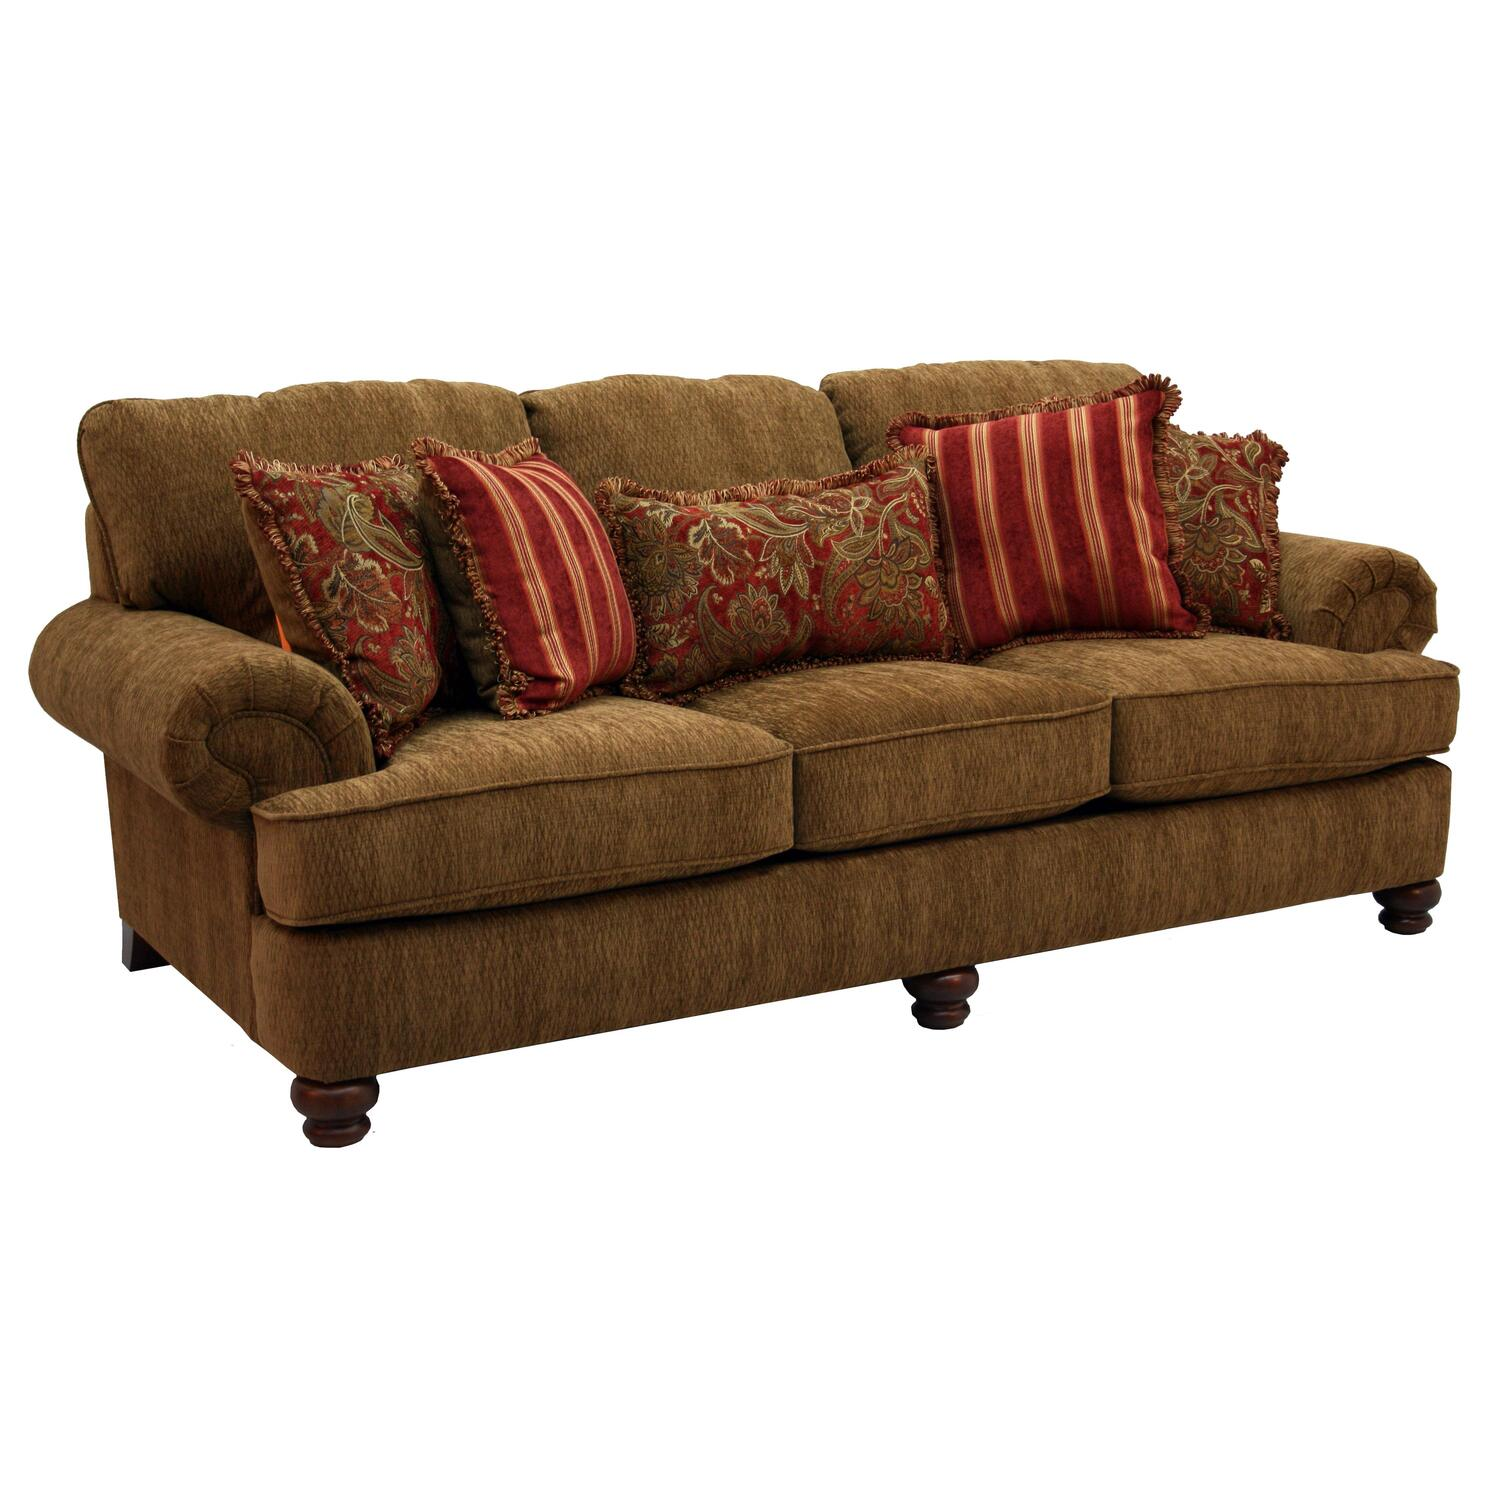 Jackson Furniture Belmont Sofa by OJ merce 4347 03 2048